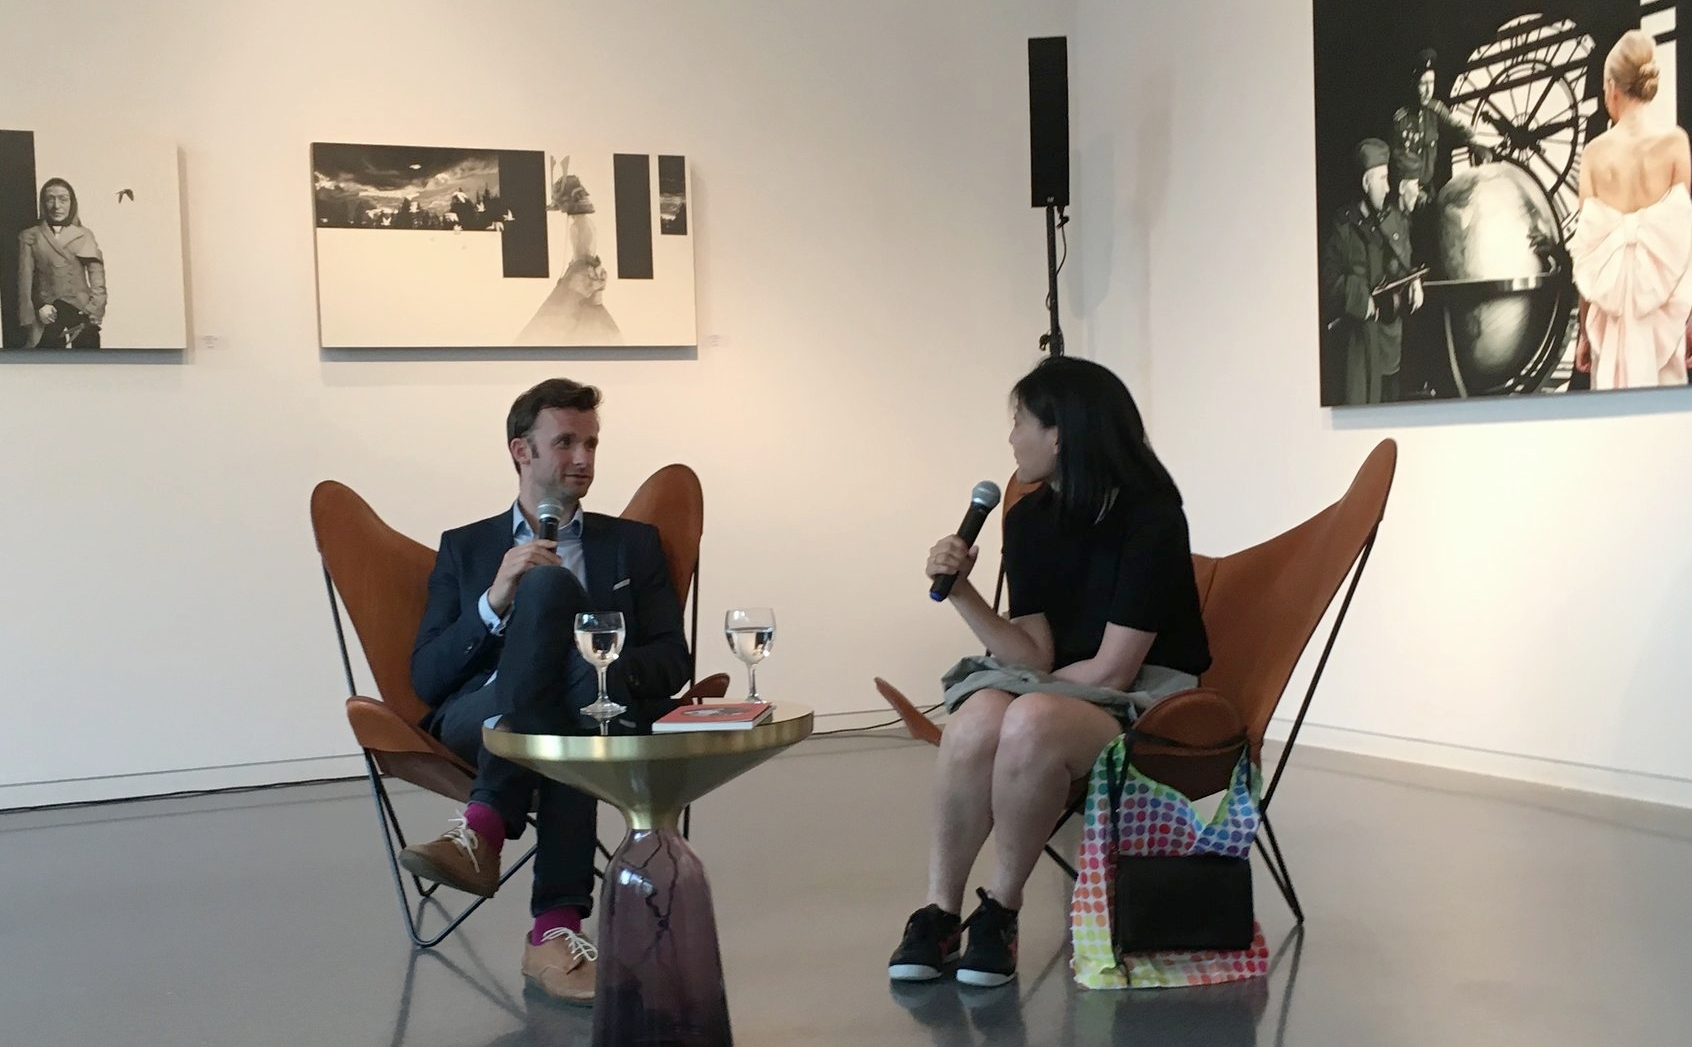 In conversation with author of  Fingerpflanzen , Anna Kim at the private view of my solo show  The Way I Remember You Now  at Venet-Haus Galerie. Photo courtesy of Marie Harnett.